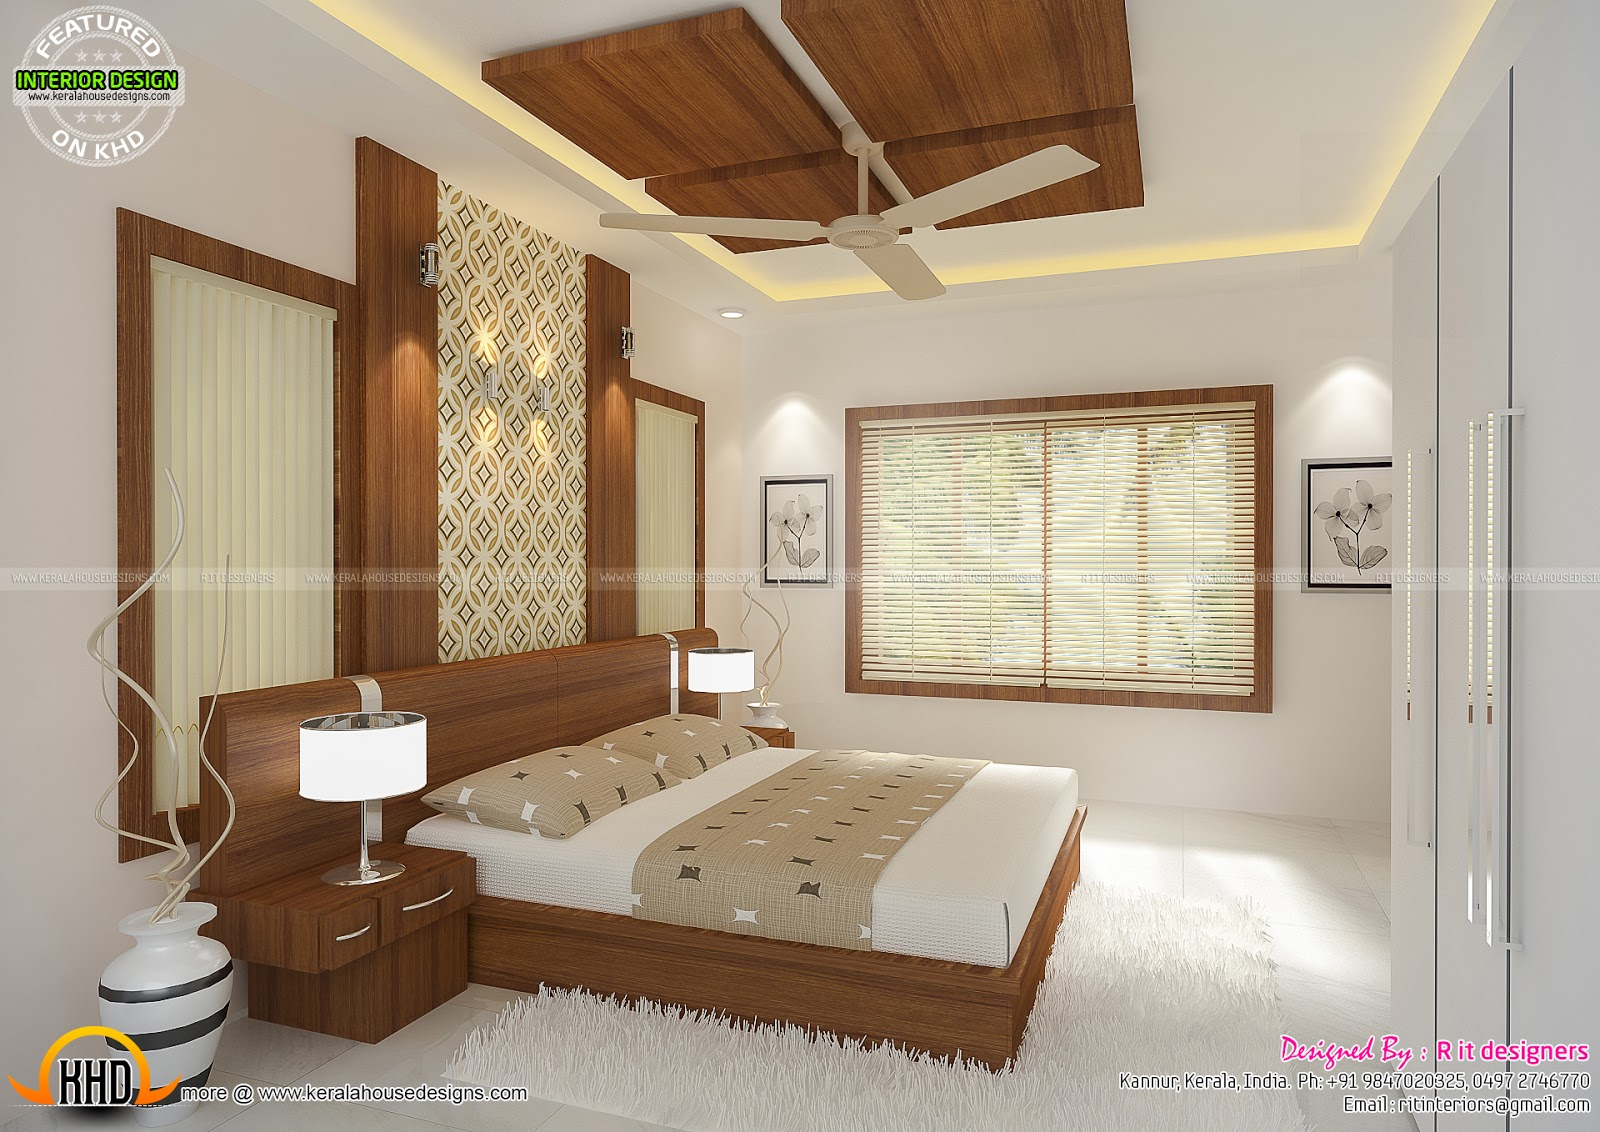 New modern luxury villa keralahousedesigns for Interior design styles master bedroom